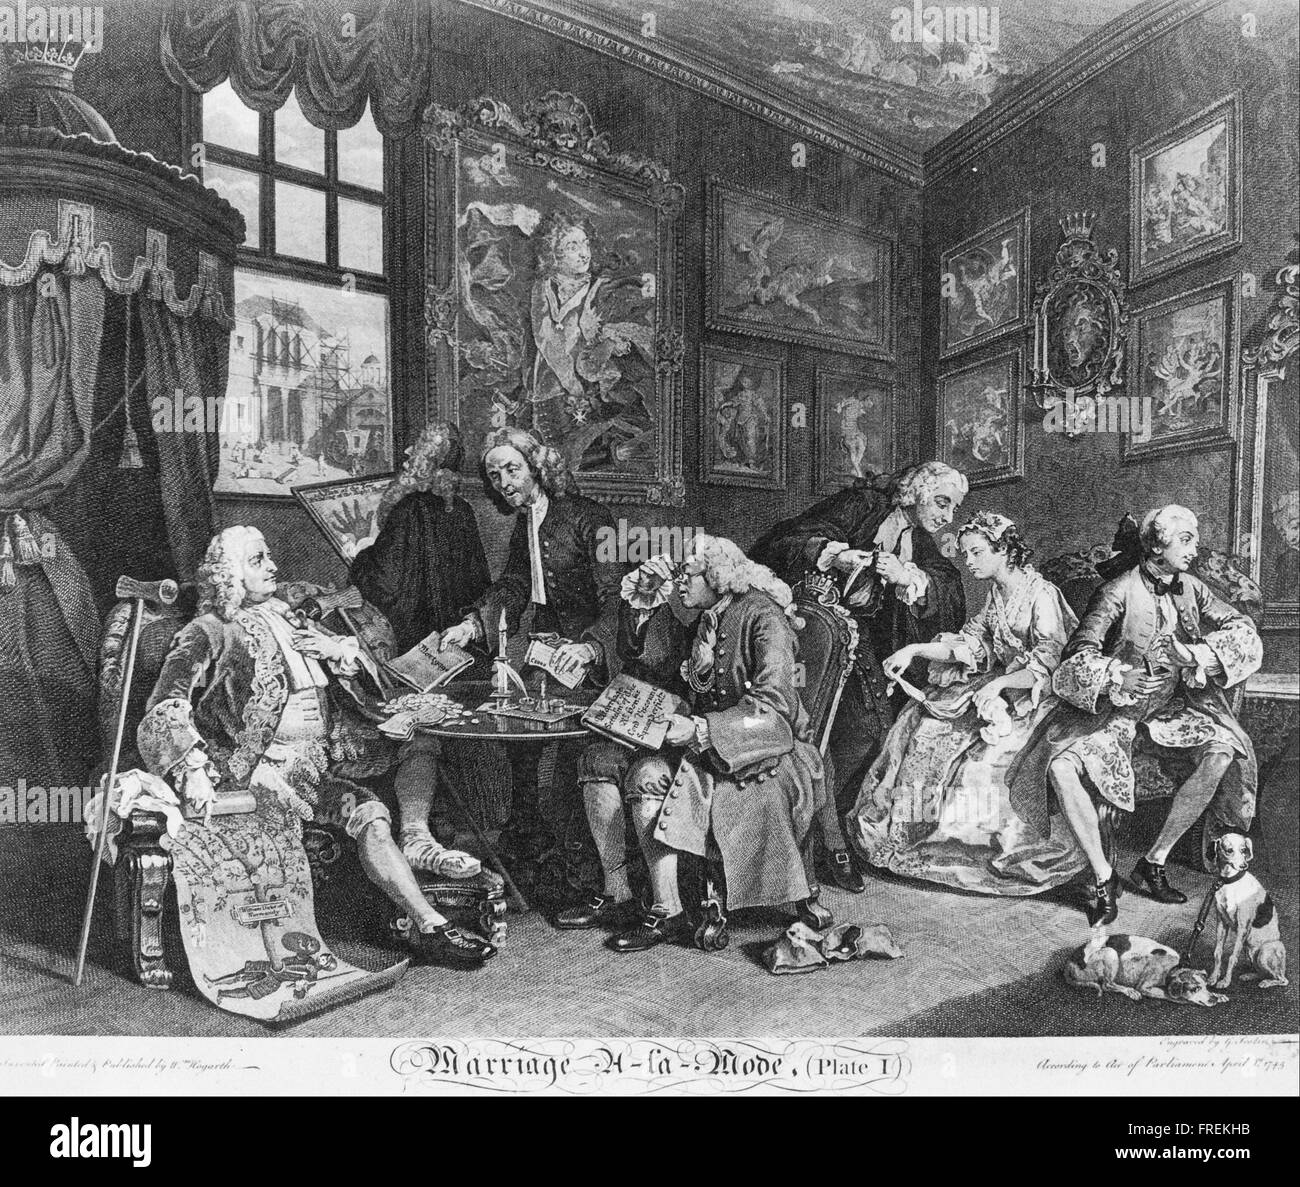 William Hogarth - Marriage à la Mode, Plate 1, (The Marriage Contract) Stock Photo